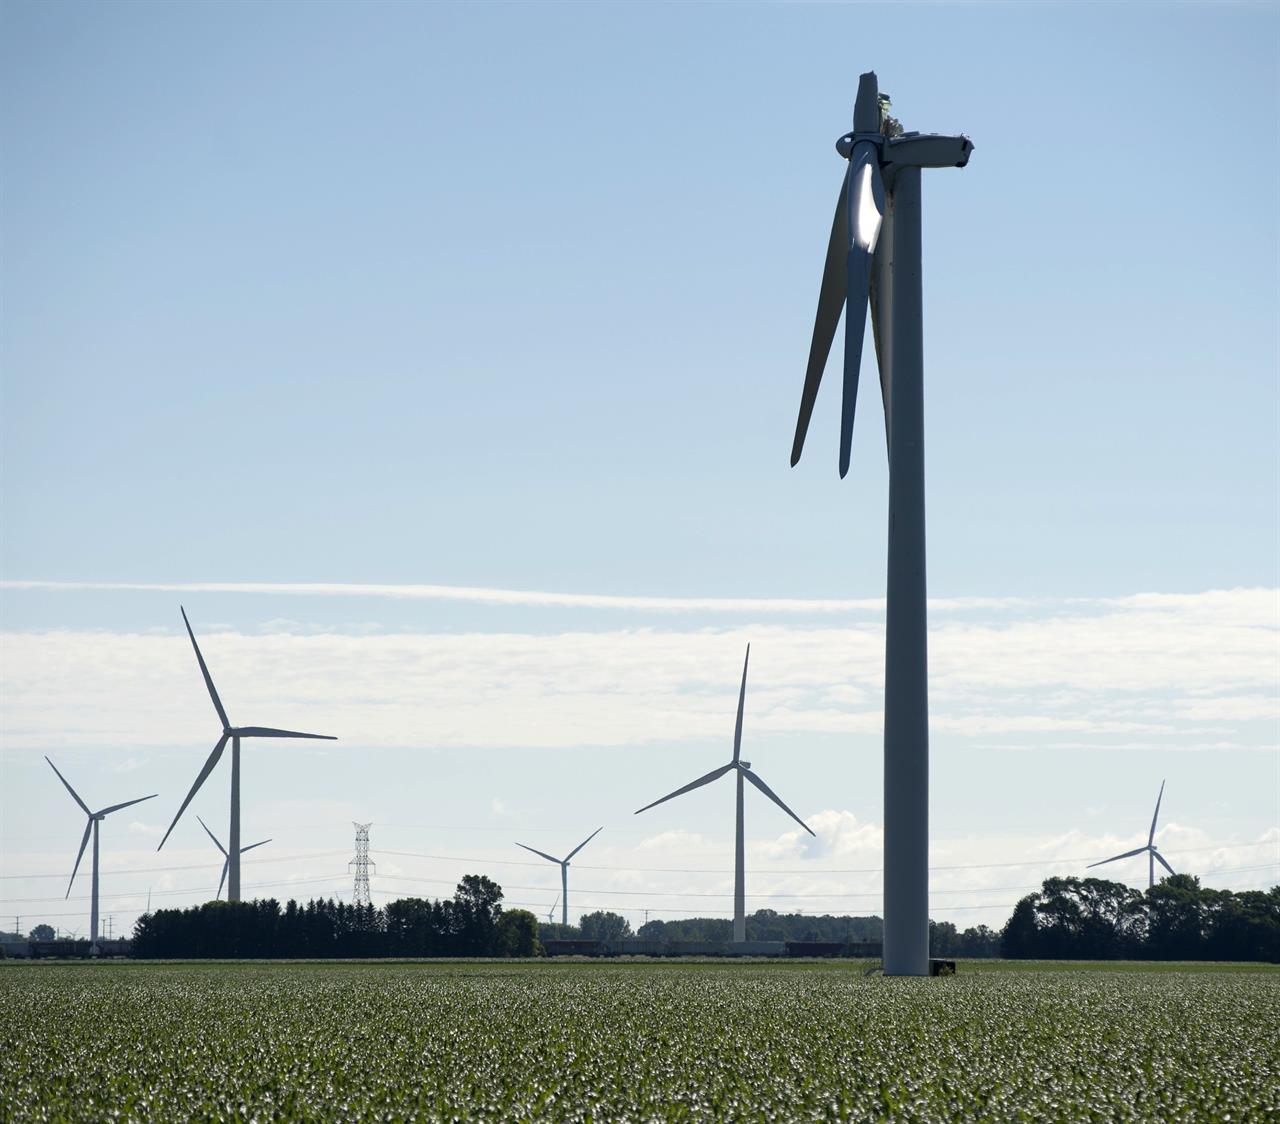 Wind turbine blade breaks in rural mid-Michigan; no injuries